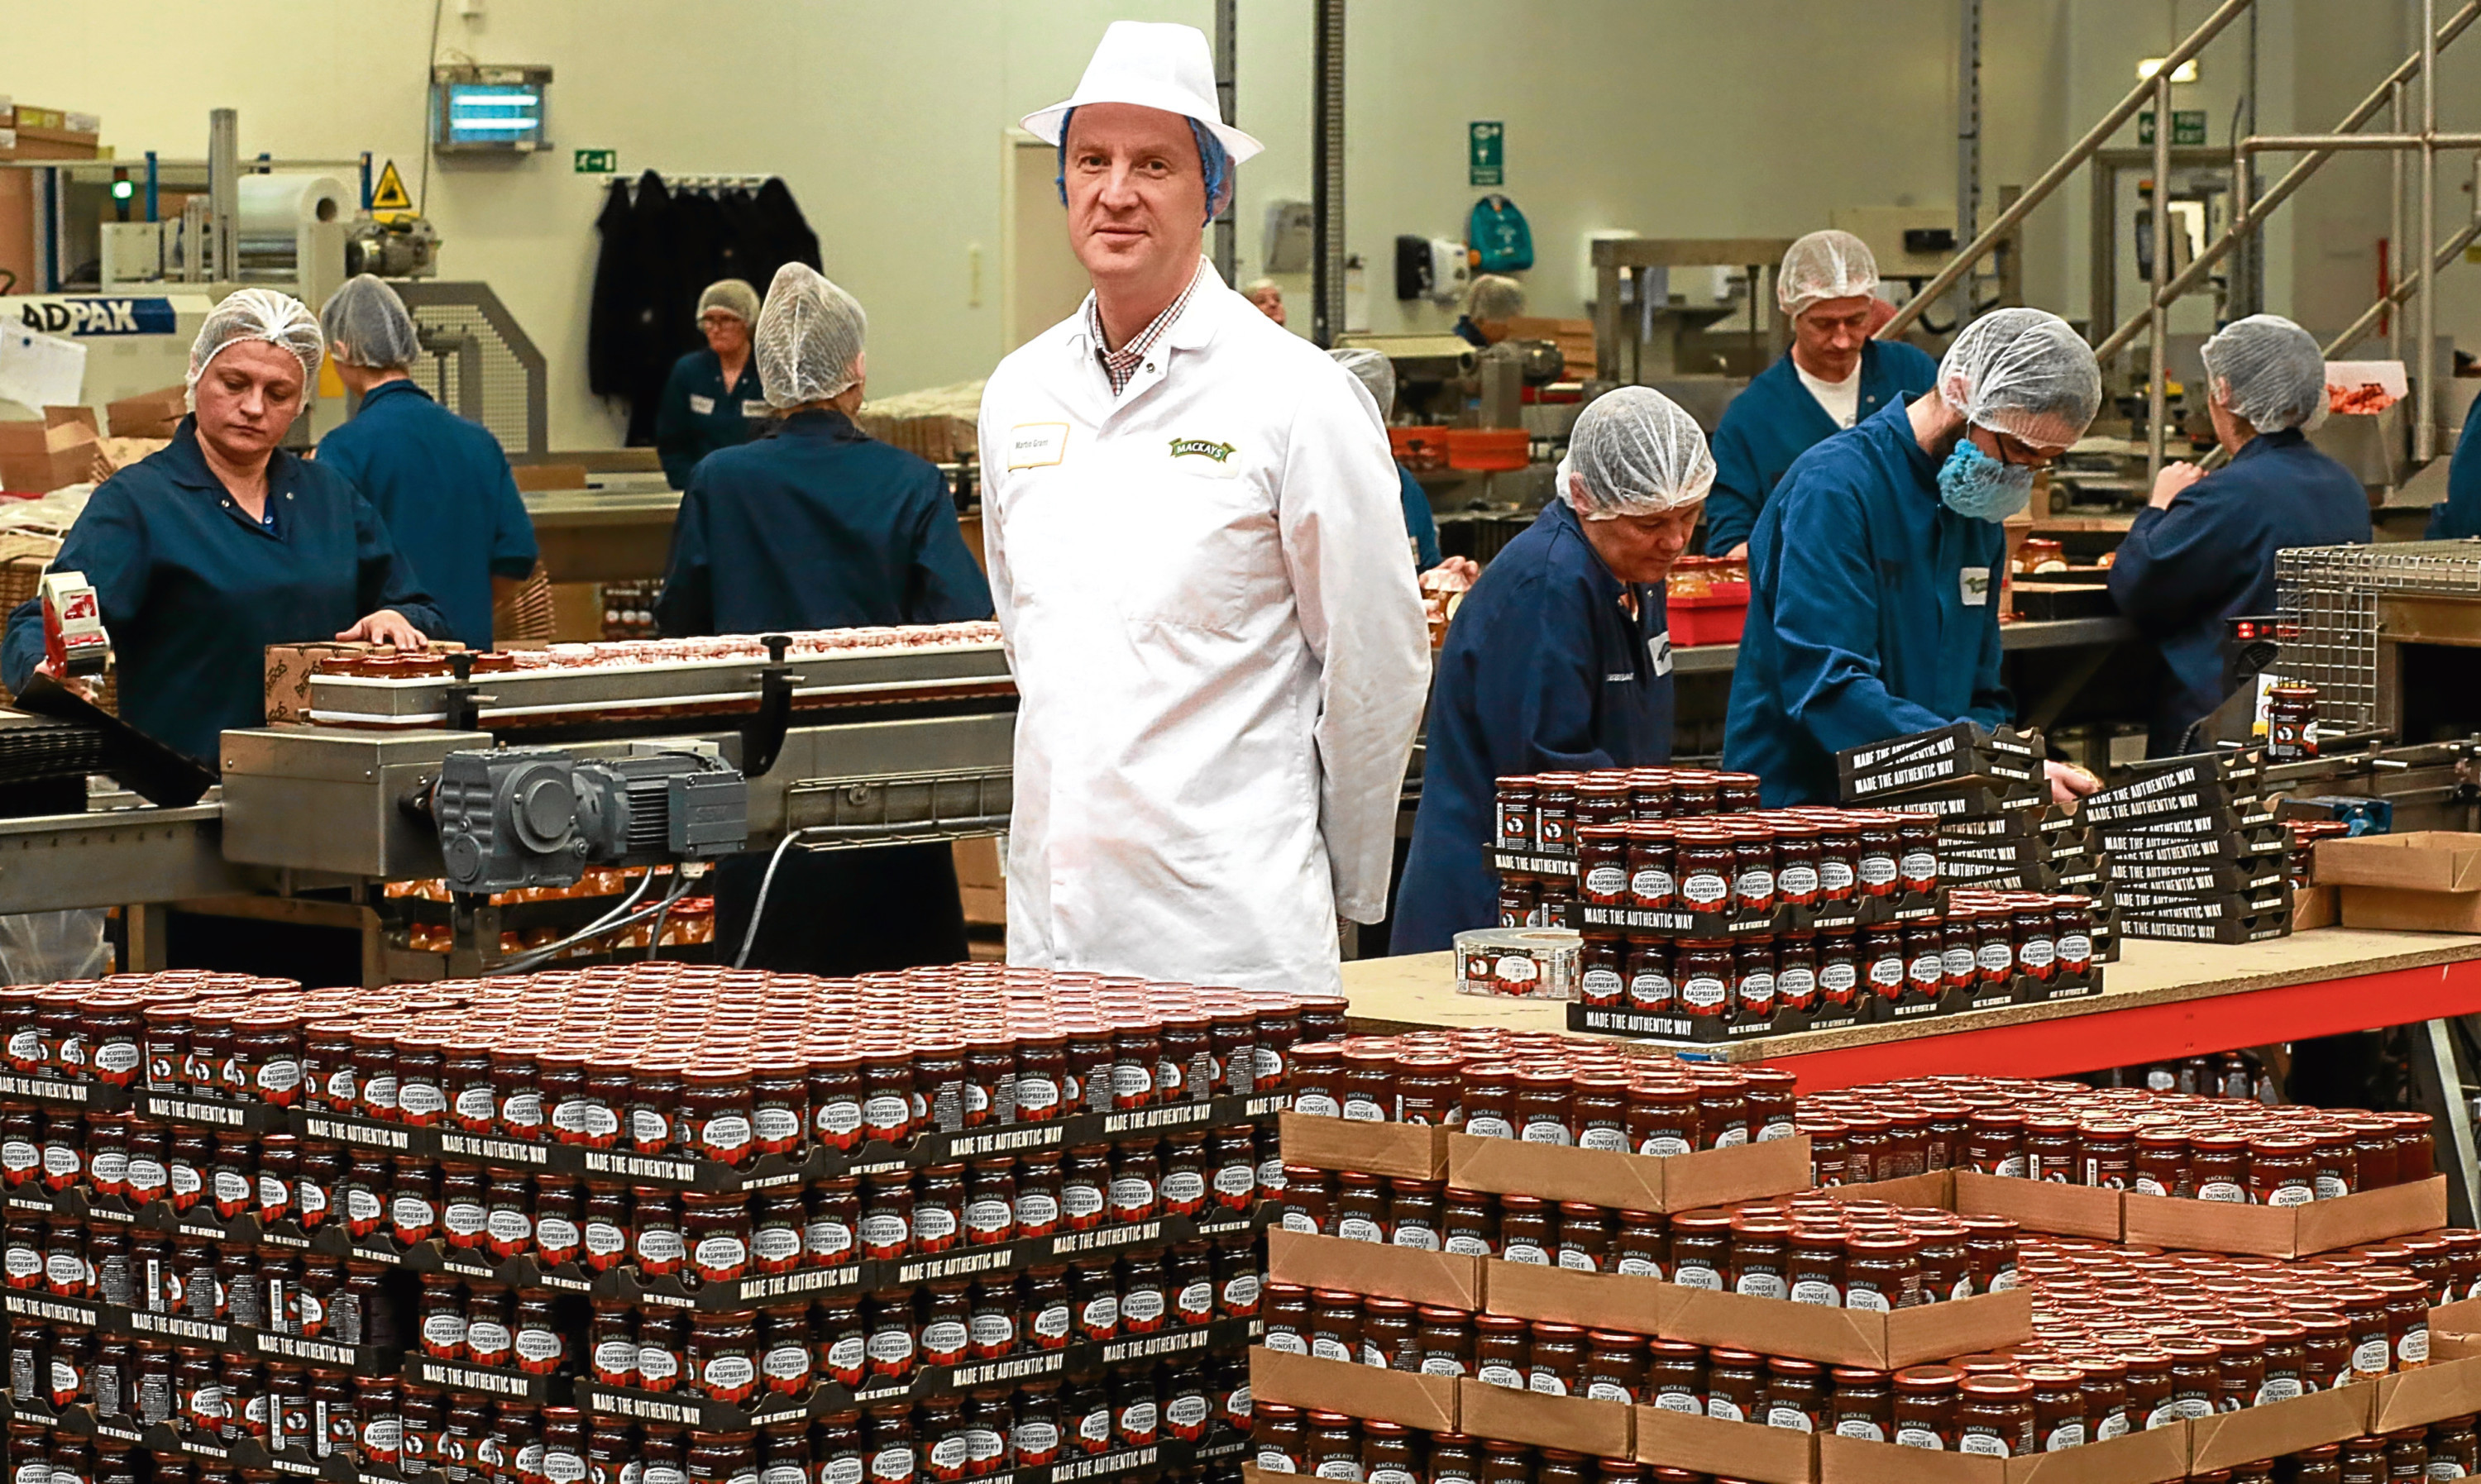 Mackays managing director Martin Grant  oversees operations in the existing packing hall.